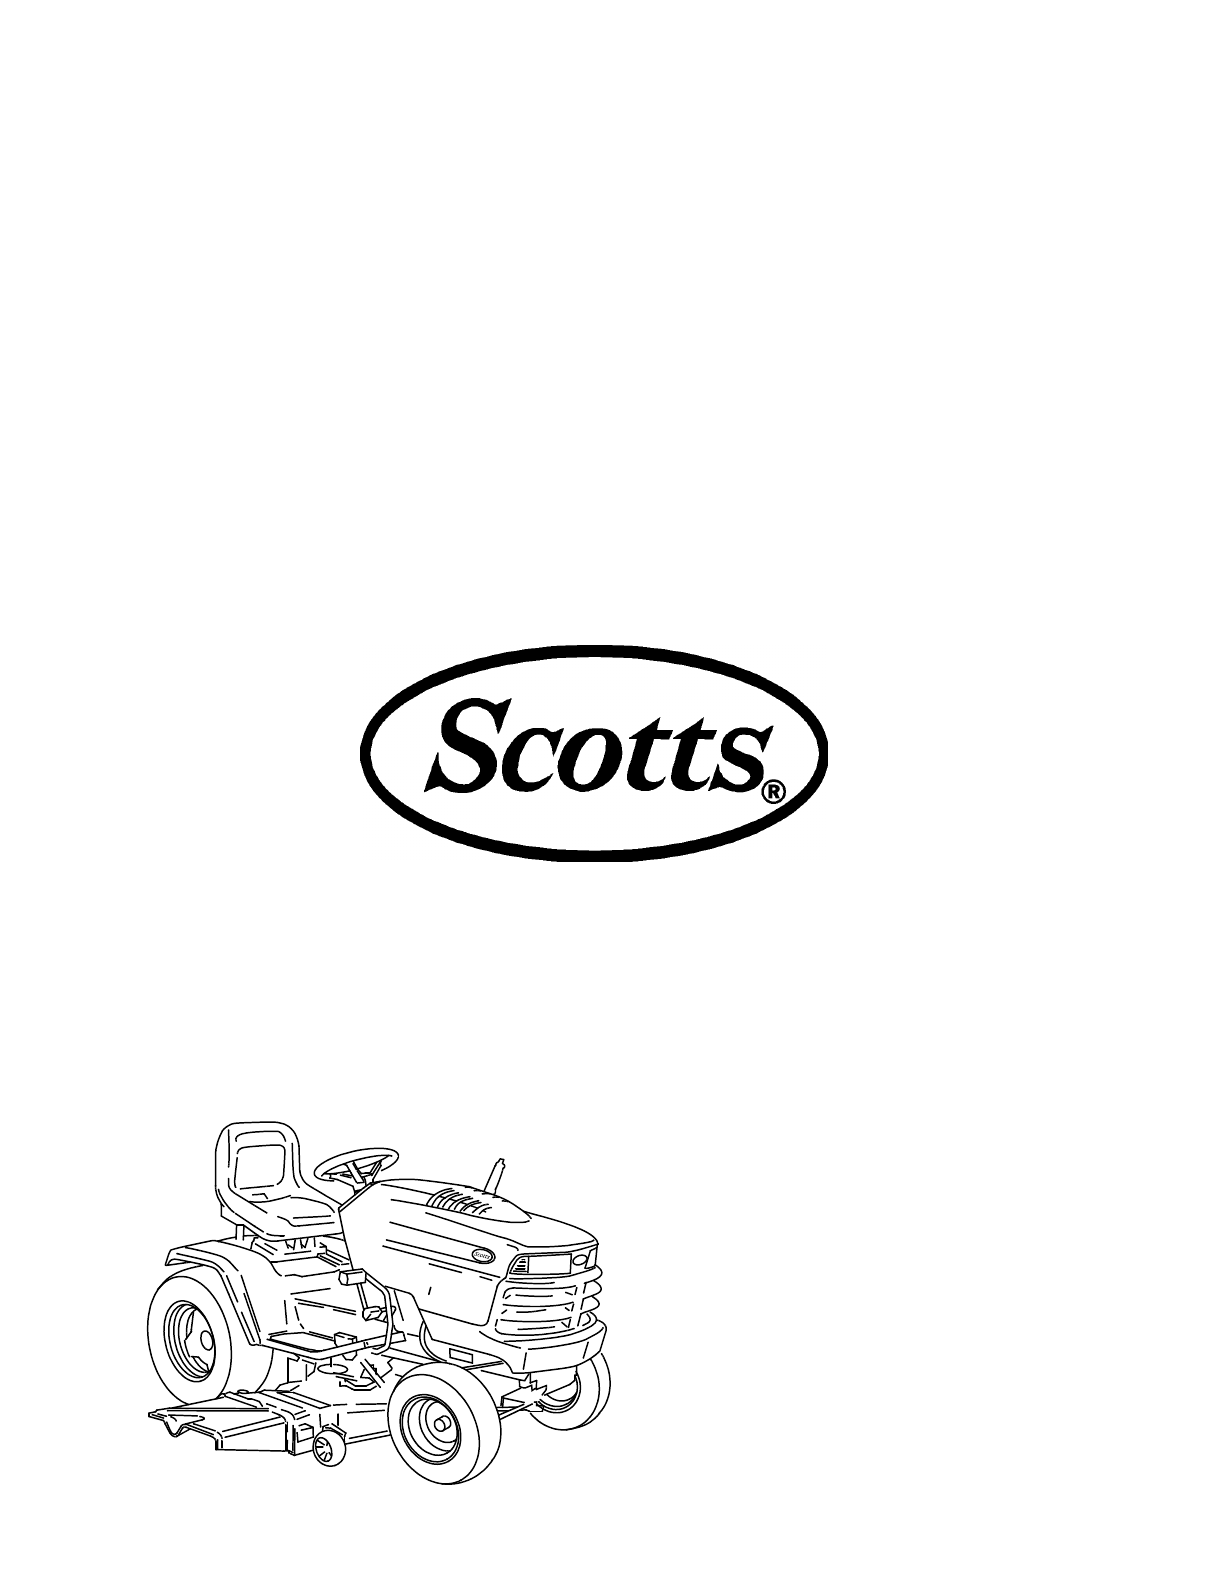 74d6465d 604f df44 71f6 2ff6ec9f391a bg1 scotts lawn mower s2048, s2554 user guide manualsonline com scotts s1642 wiring diagram at mr168.co